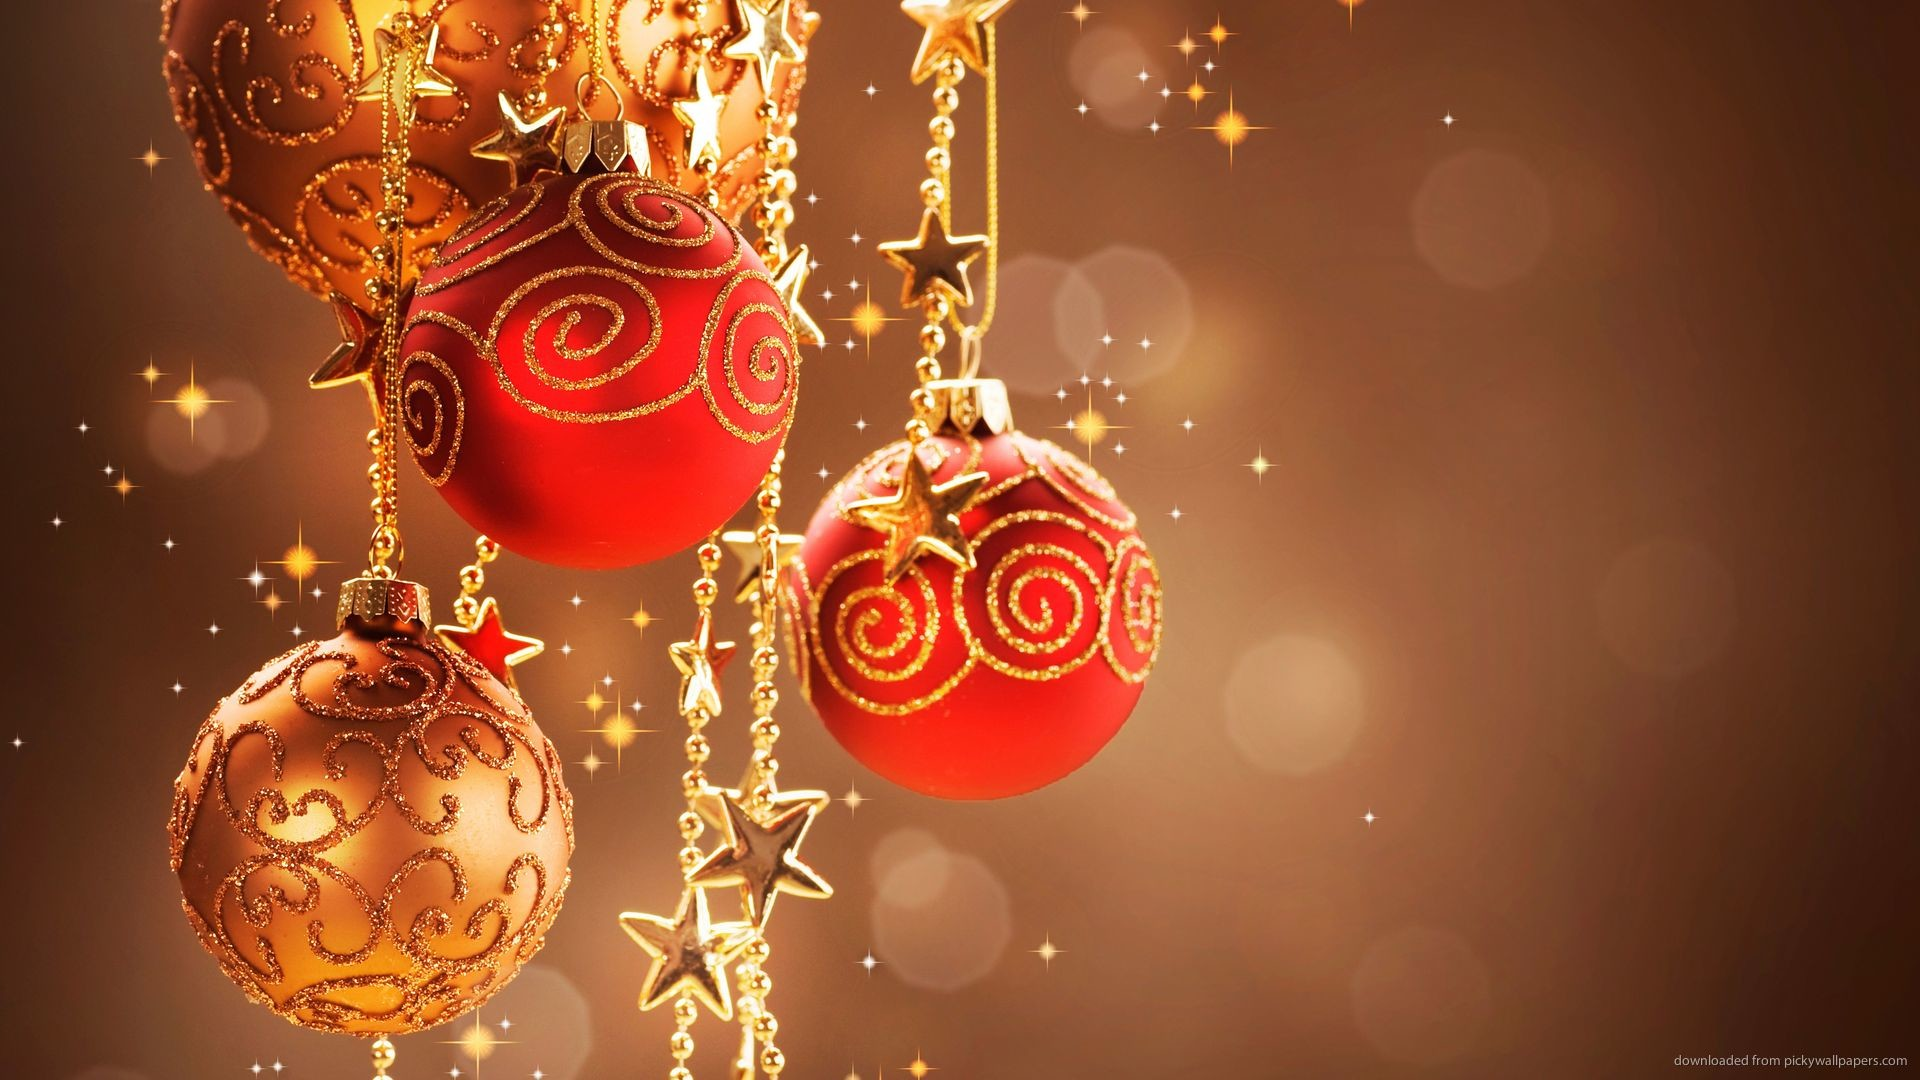 1920x1080 balls christmas christmas tree decorations gold related wallpapers